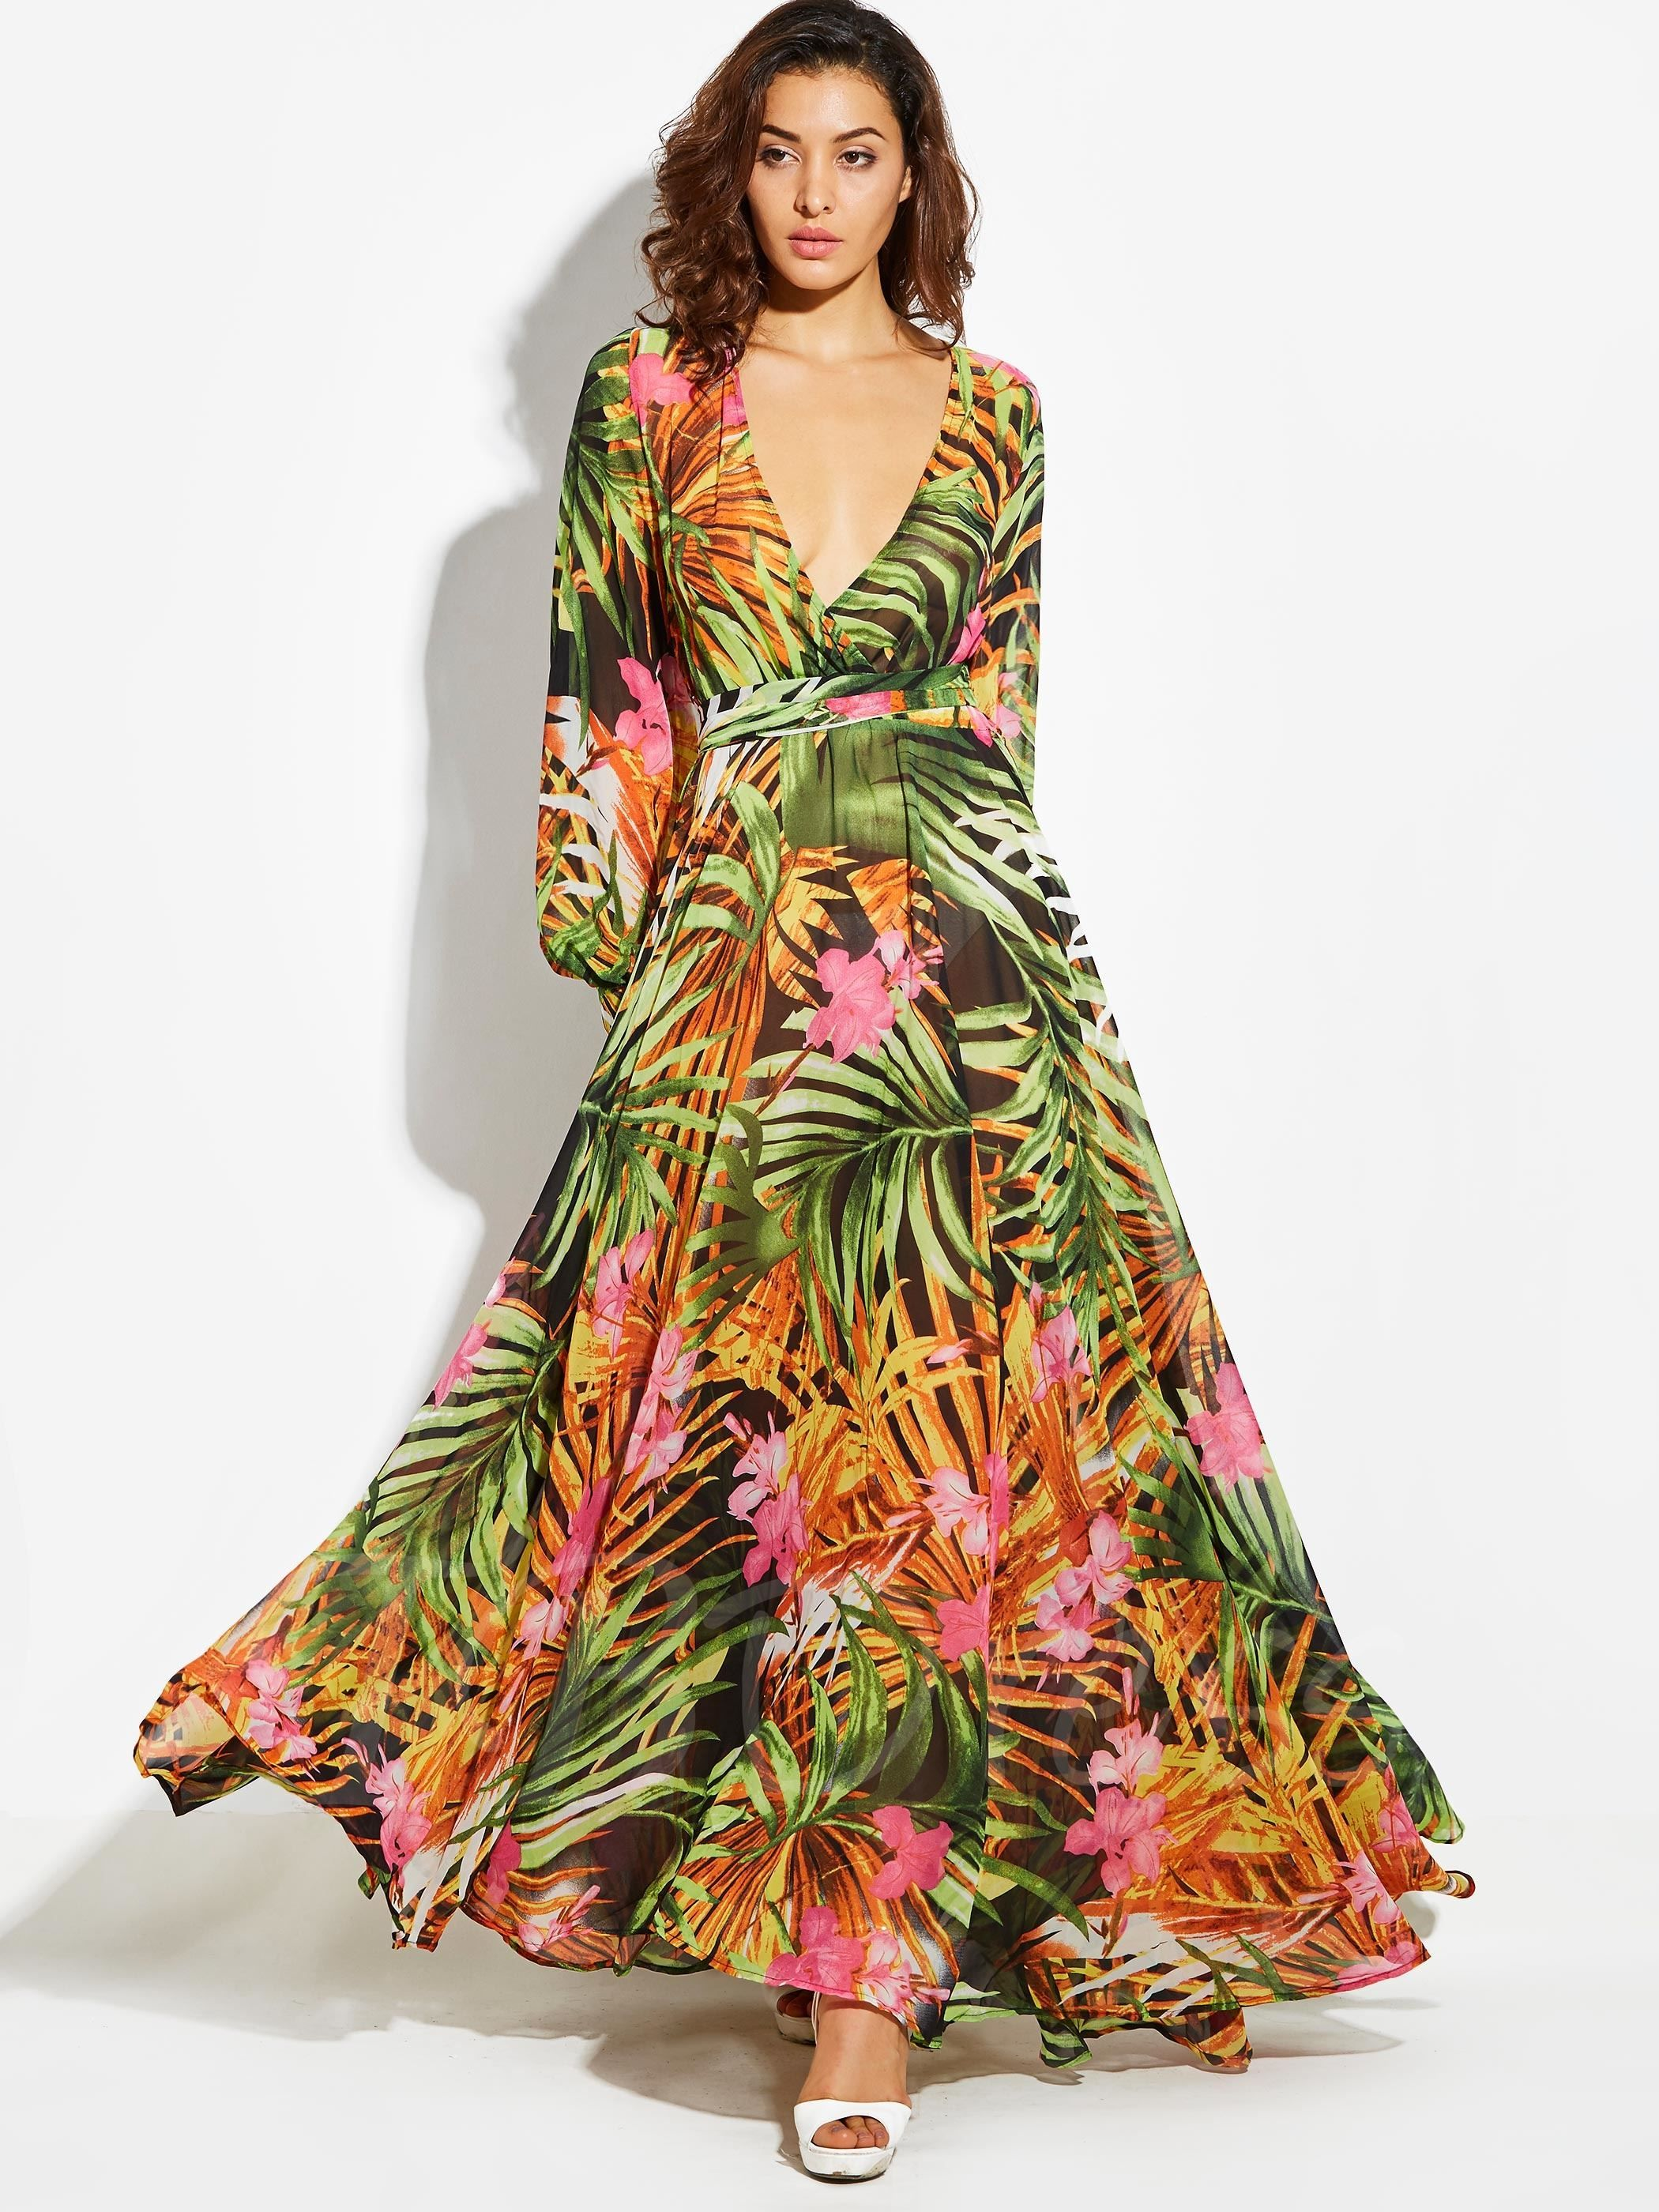 Floral Print V-Neck Bishop Sleeve Vacation Women s Maxi Dress   luaupartyideas  luaudressideas 57d490bf9911